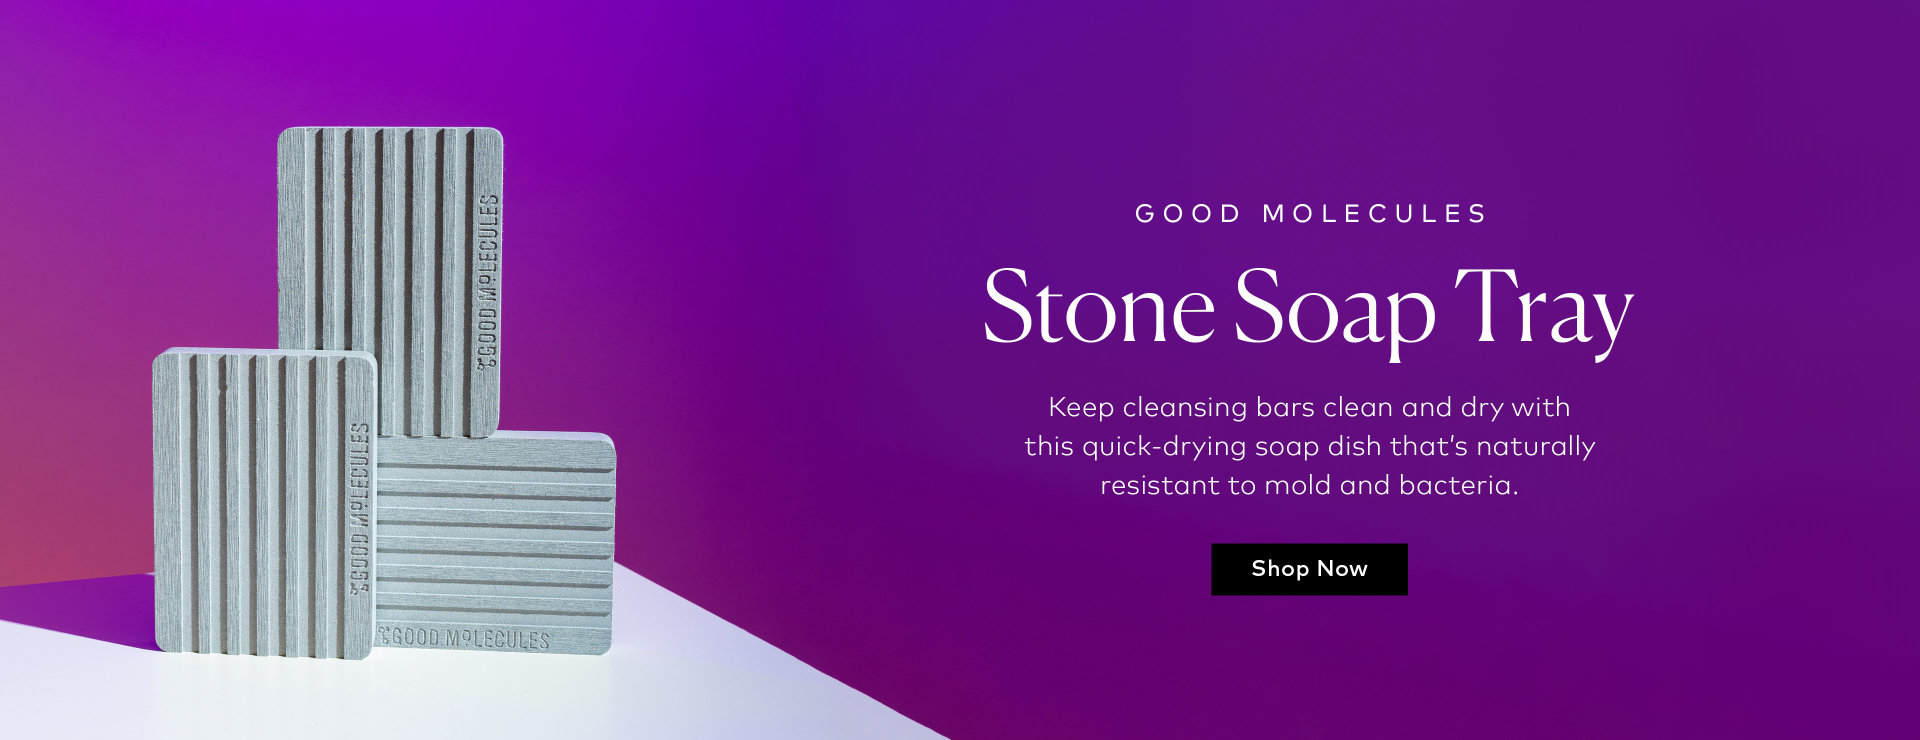 Shop Good Molecules Stone Soap Tray on Beautylish,com